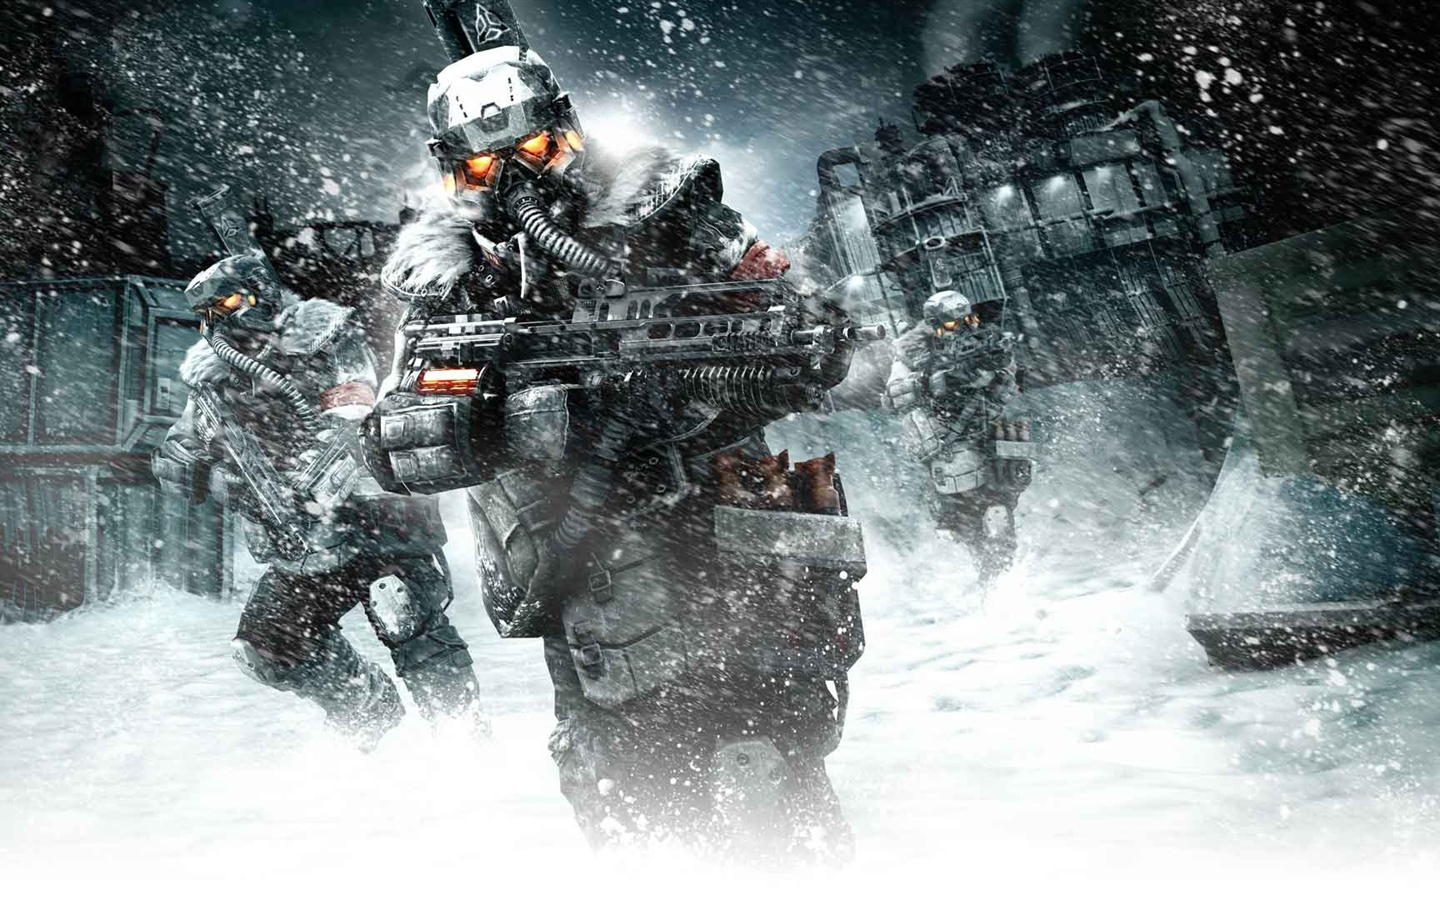 Download Wallpaper 1440x900 Killzone 3 HD HD Background